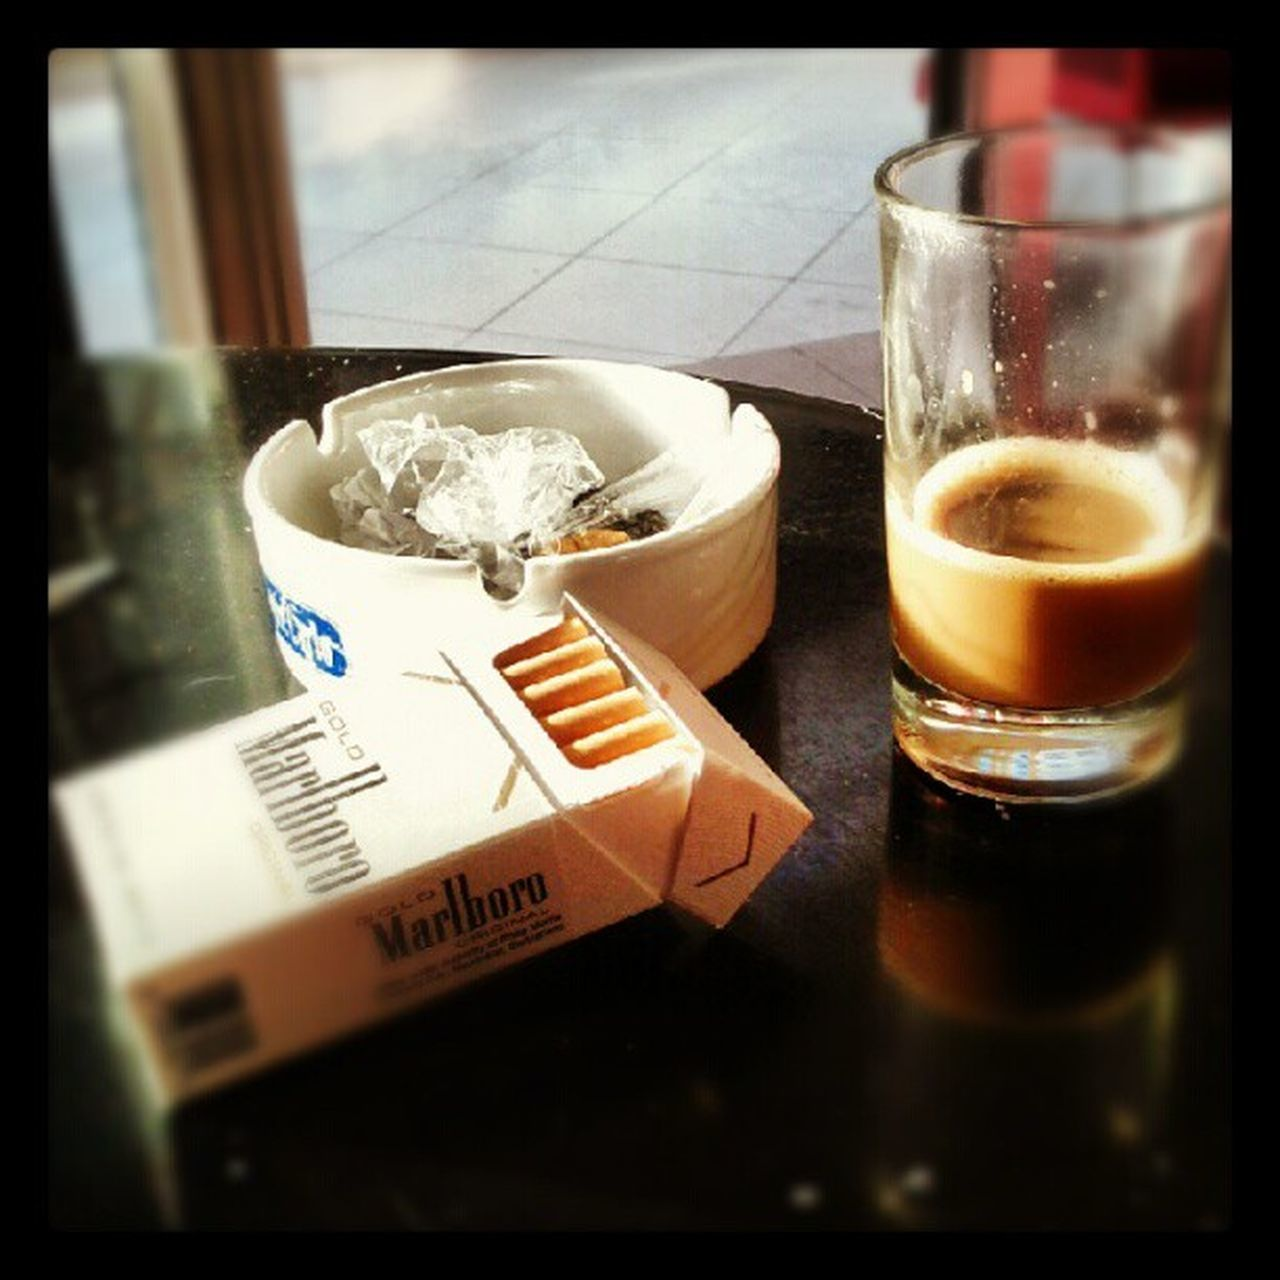 Coffee Cafe Ashtray  Cigarettes Matlboro Break Afterwork Relax Beverage Tired tunis Tunisia